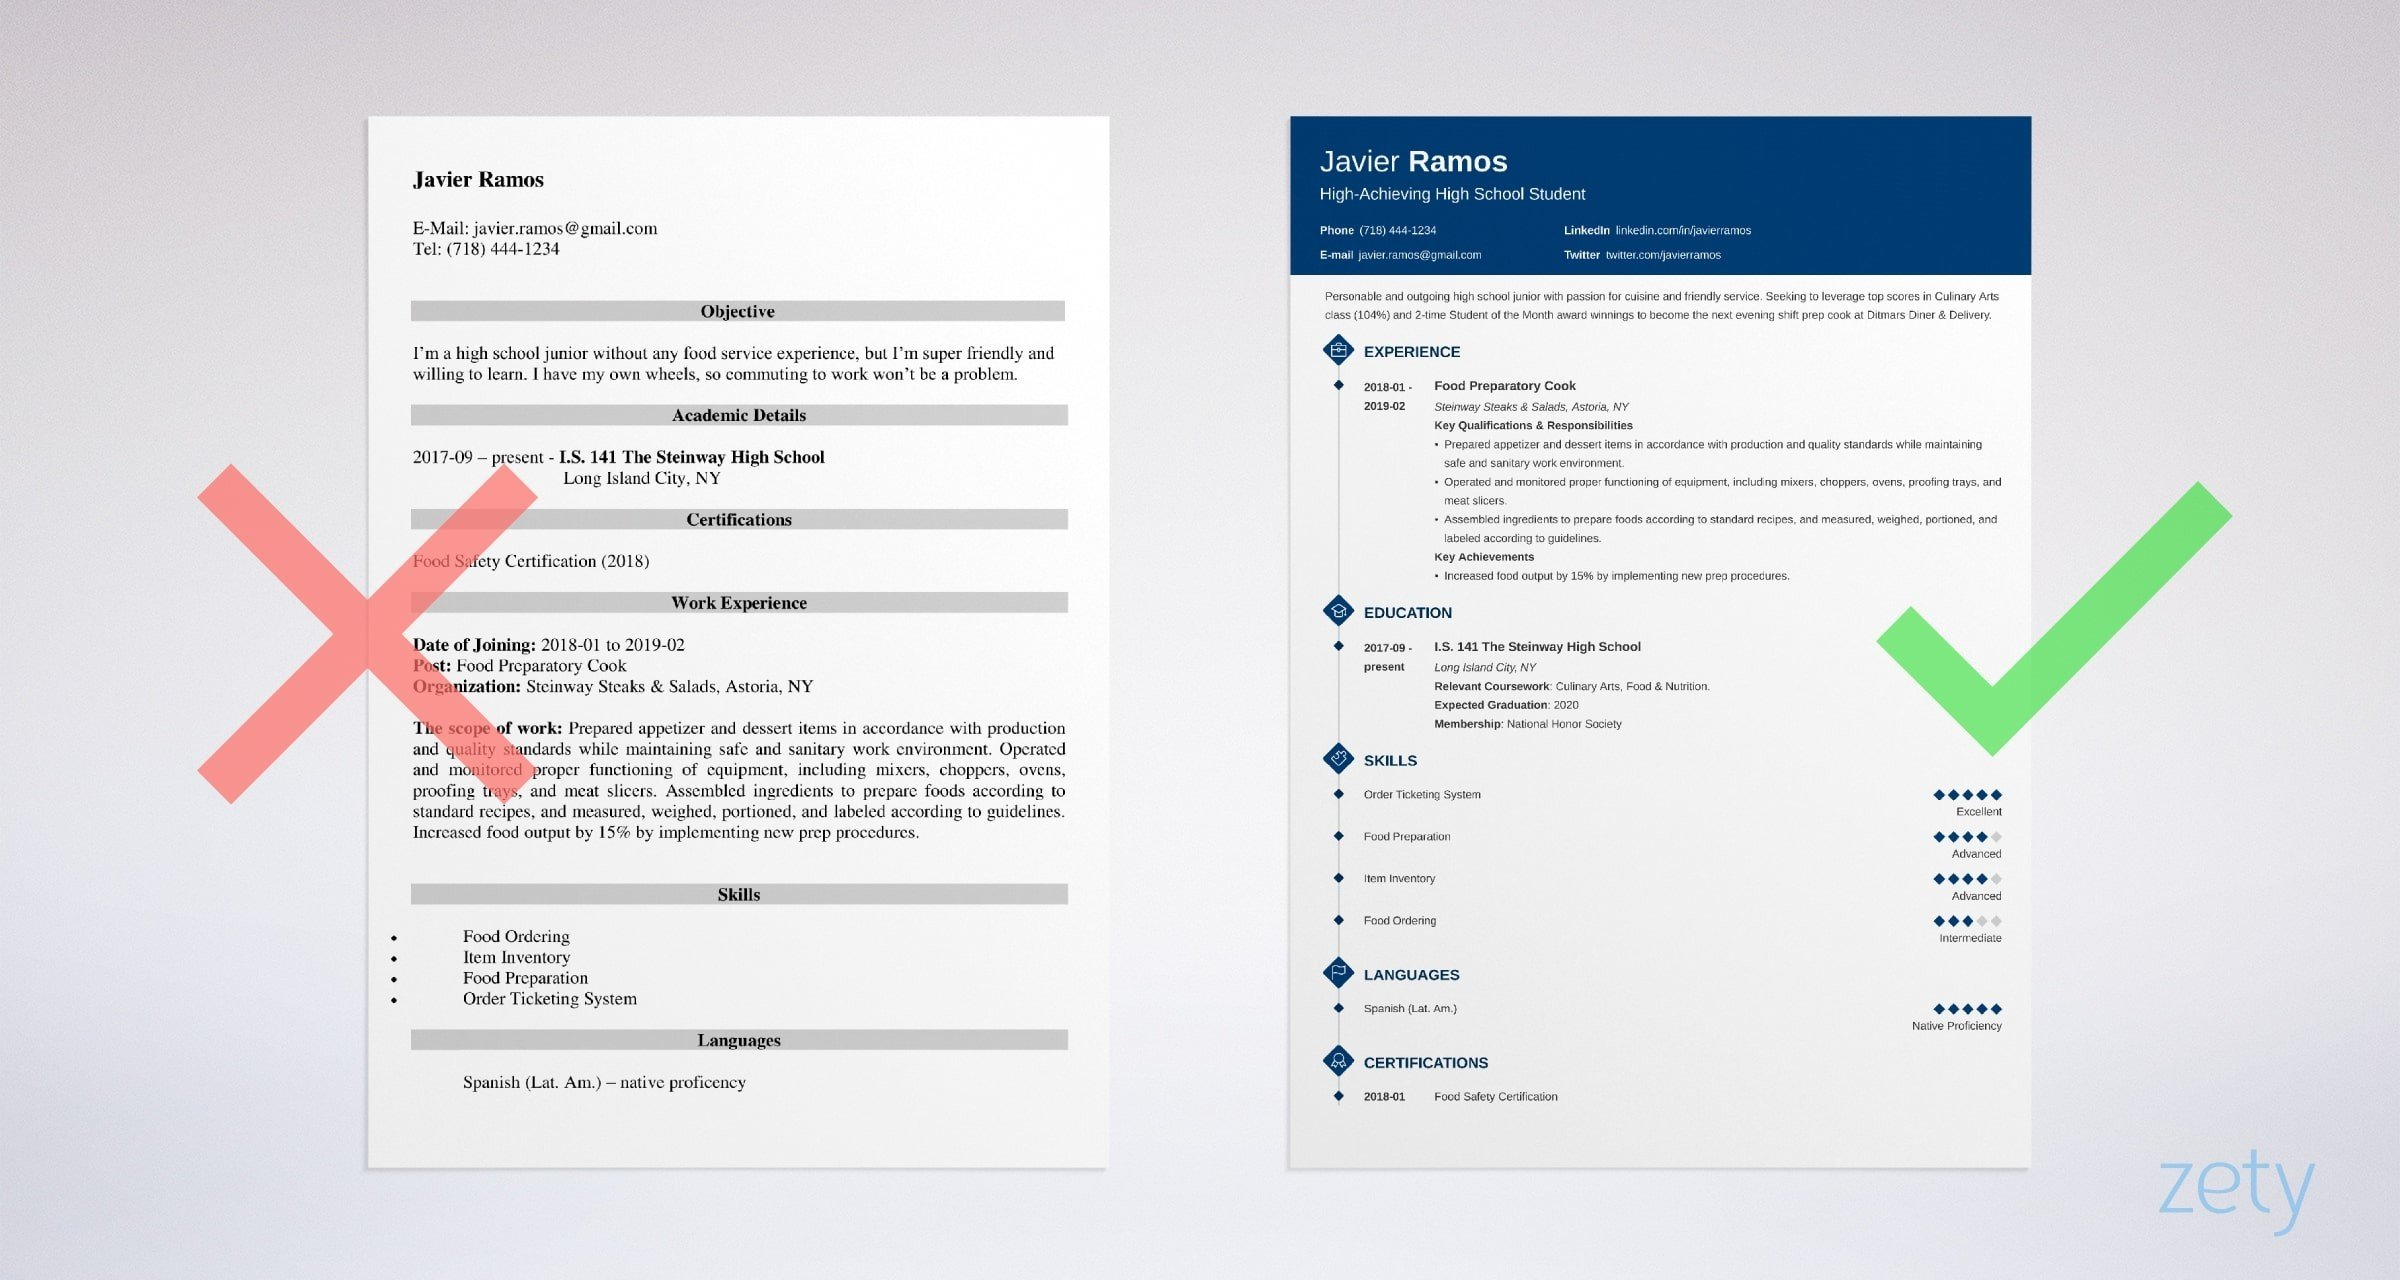 high school student resume template examples for students with experience templates Resume Resume Examples For High School Students With Experience